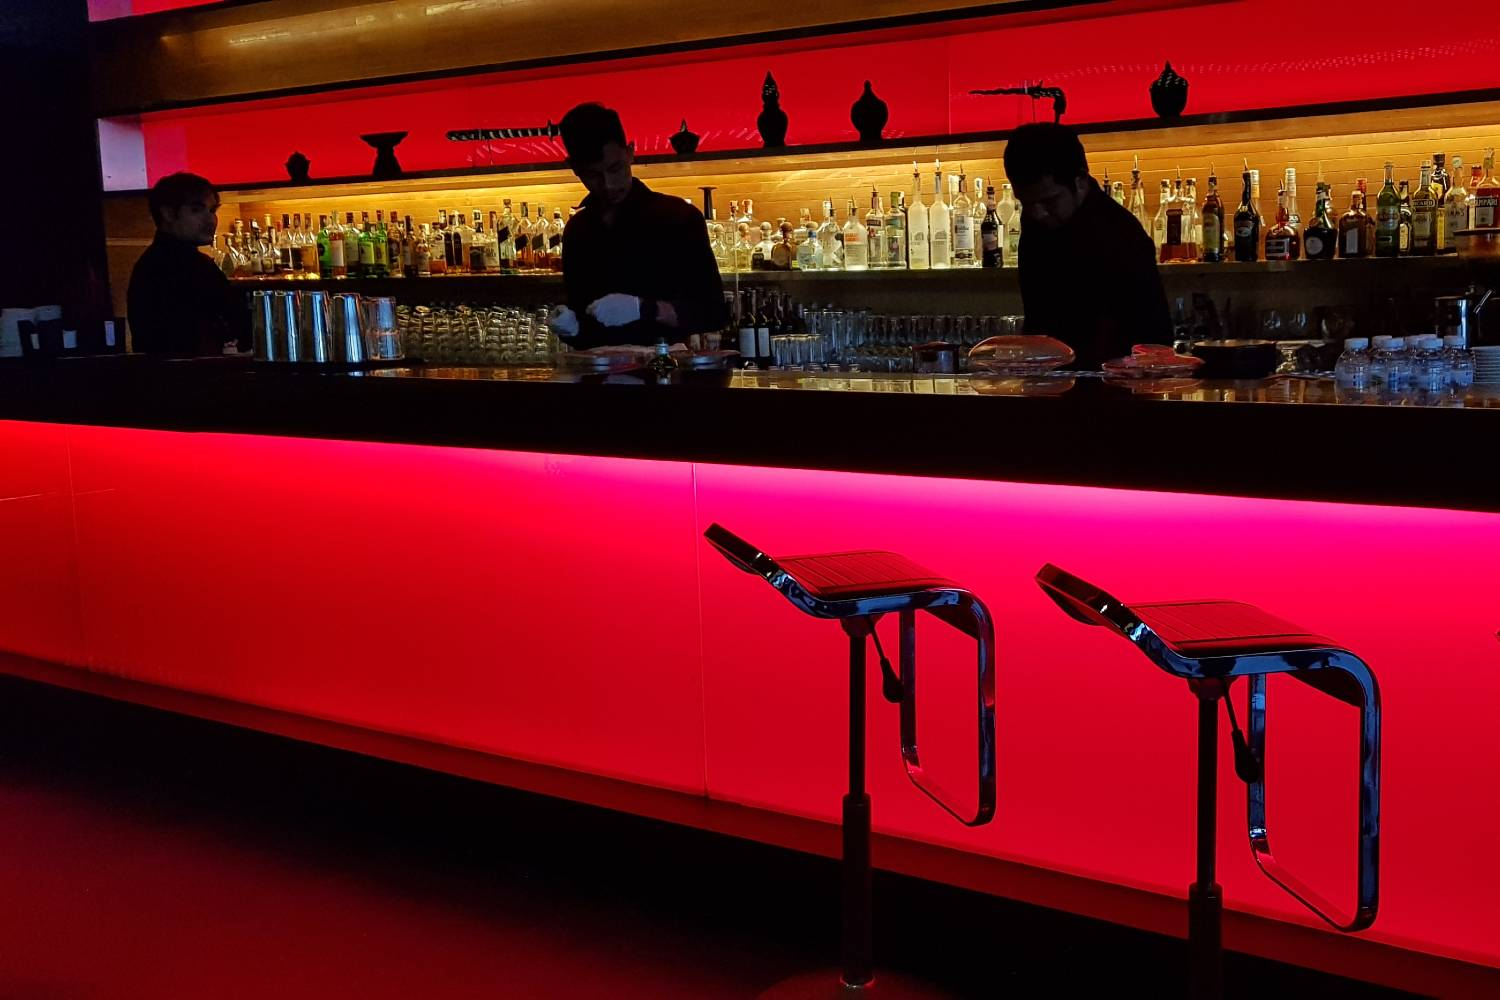 The bar with bartenders at Long Table in Bangkok